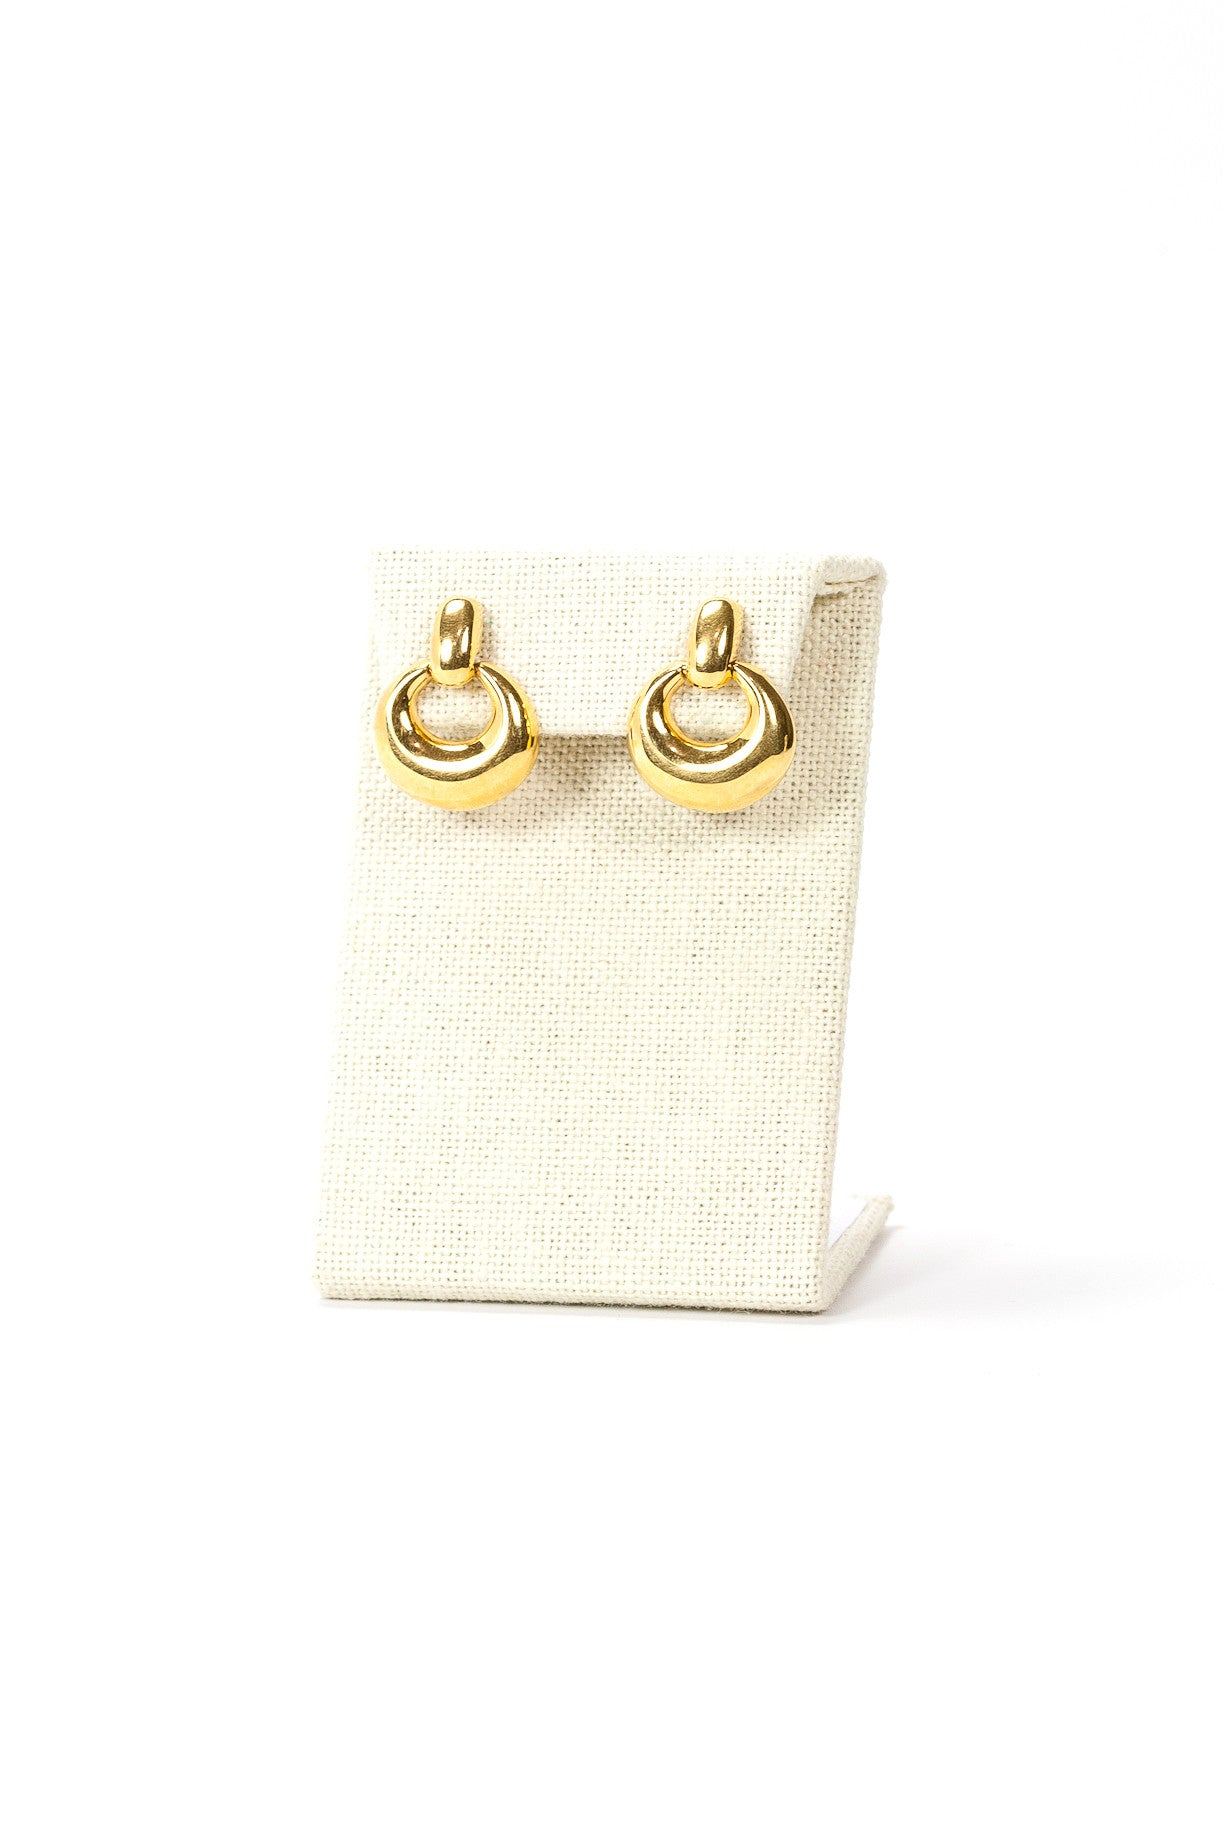 80's__Napier__Gold Link Earrings